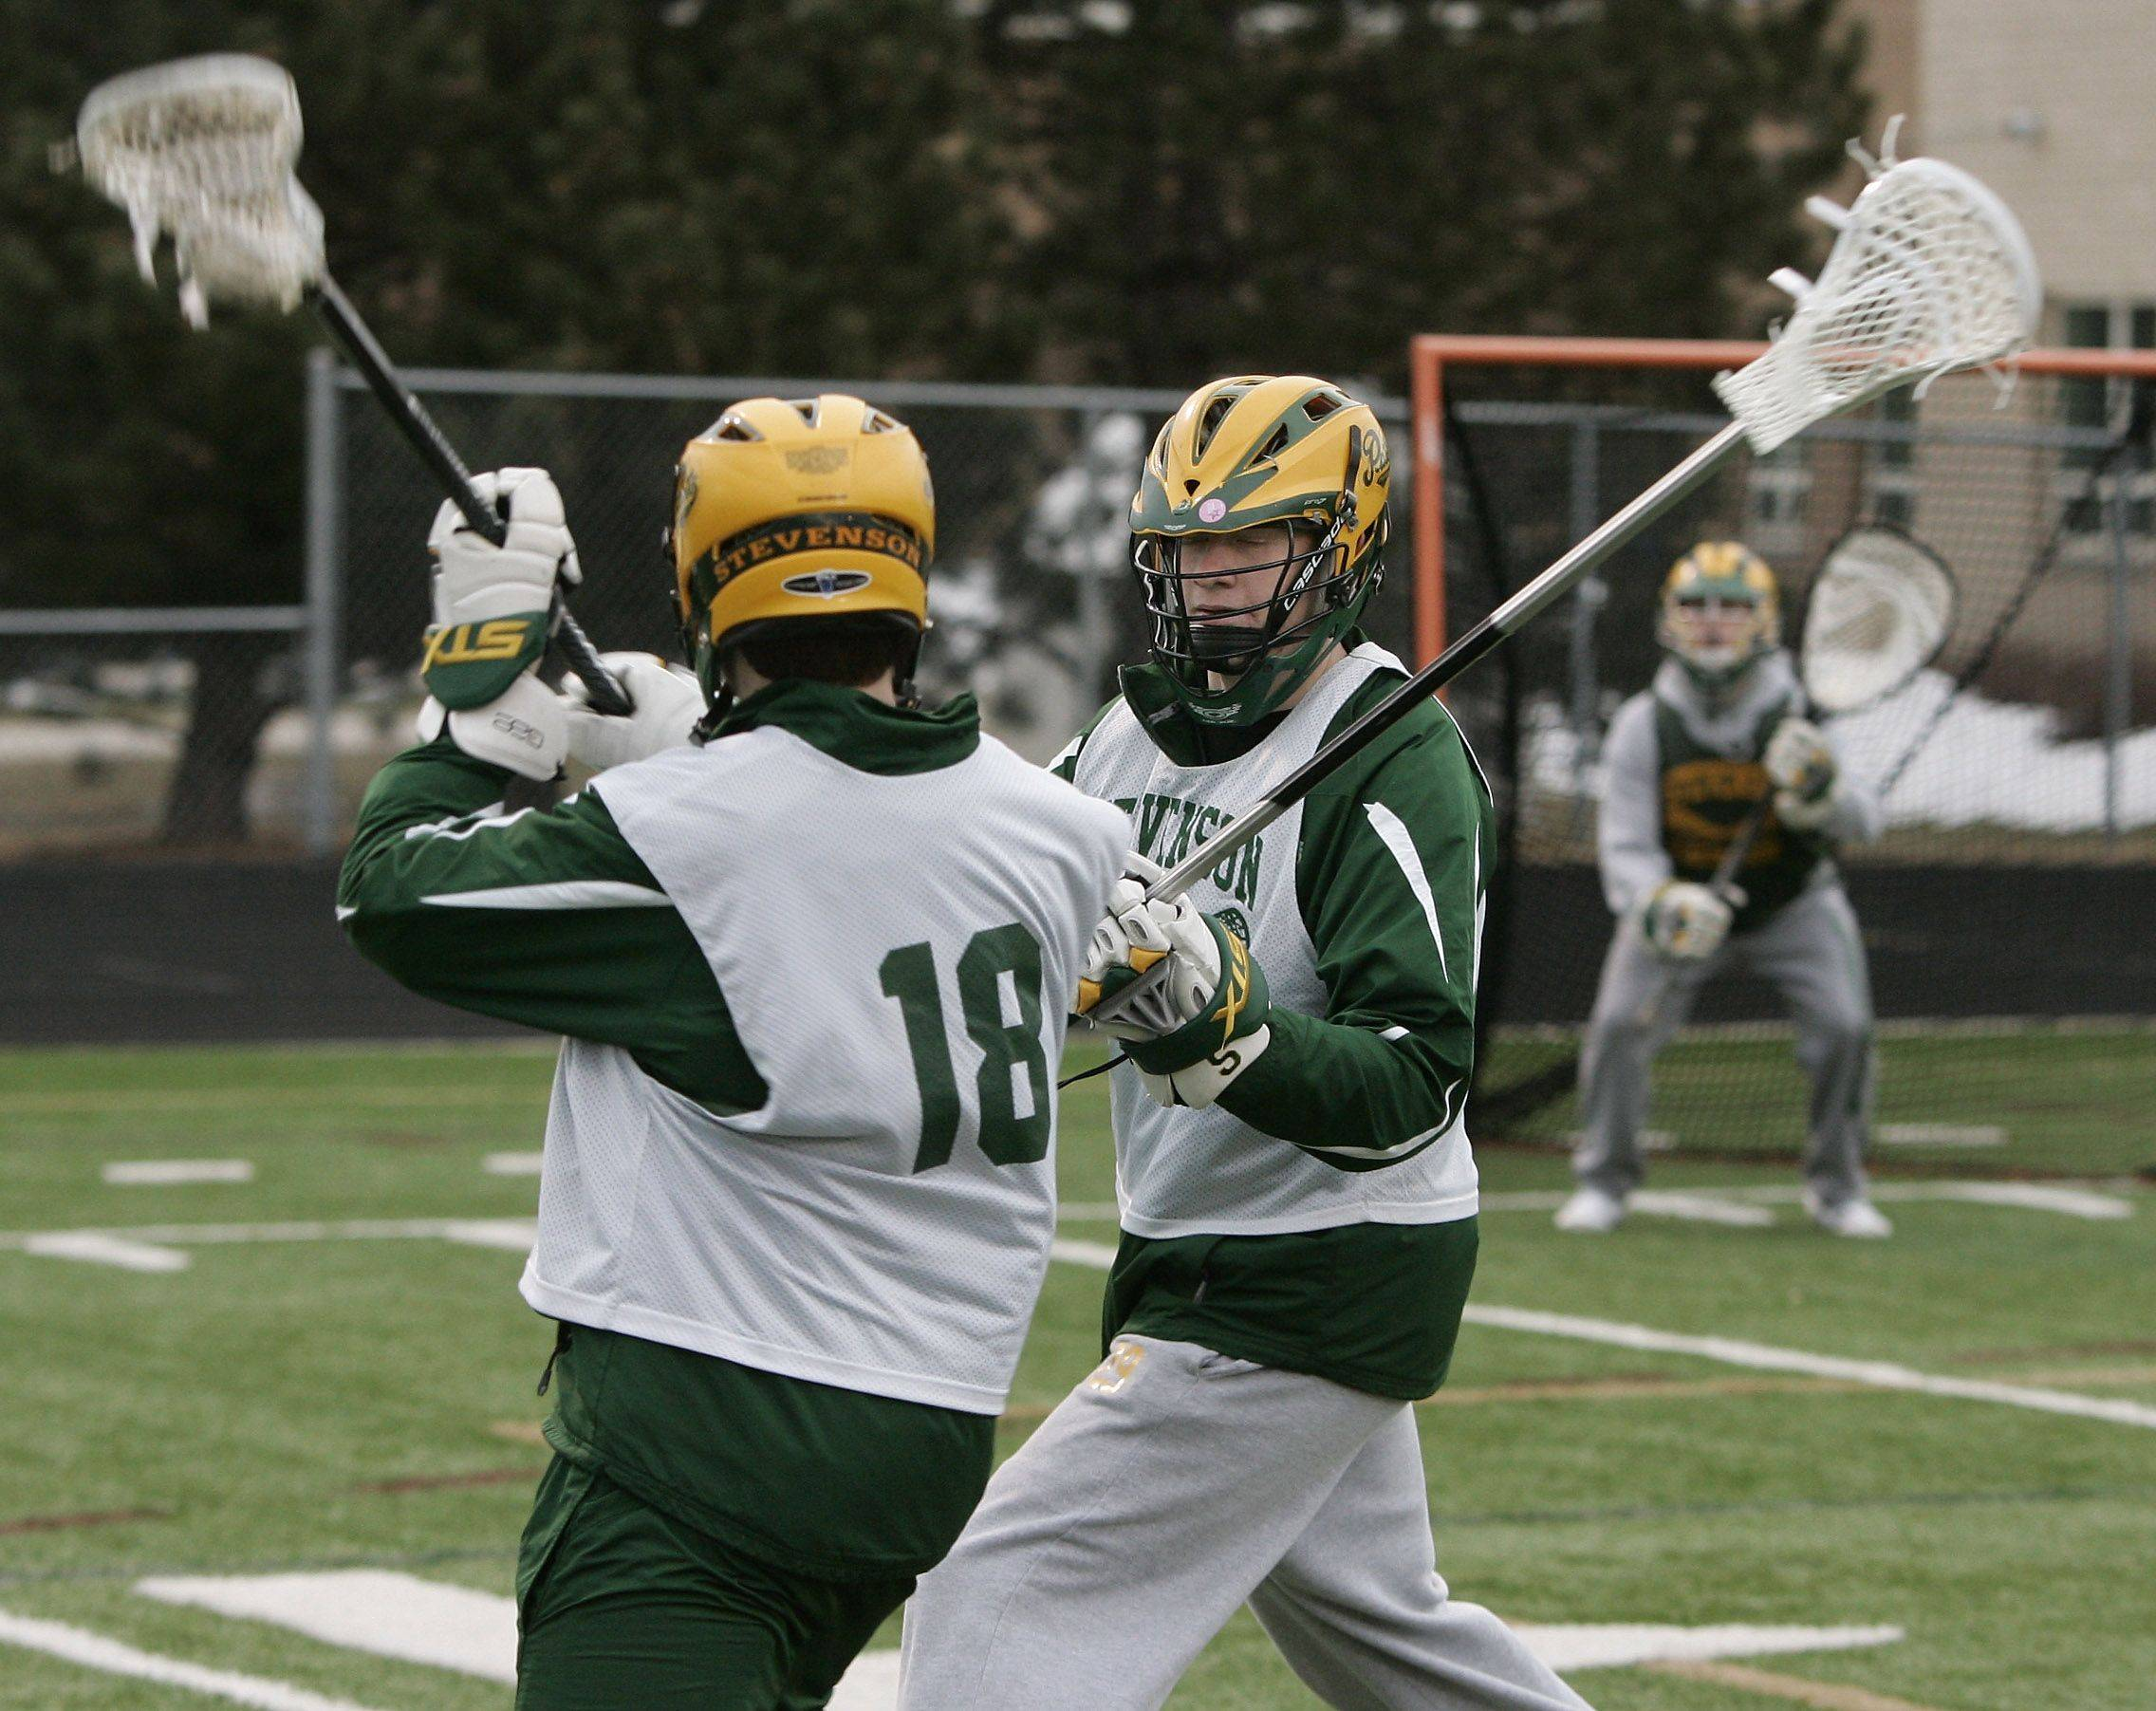 Defender Matt Stritof blocks aa attacker during the boys lacrosse team practice at Stevenson High School in Lincolnshire.